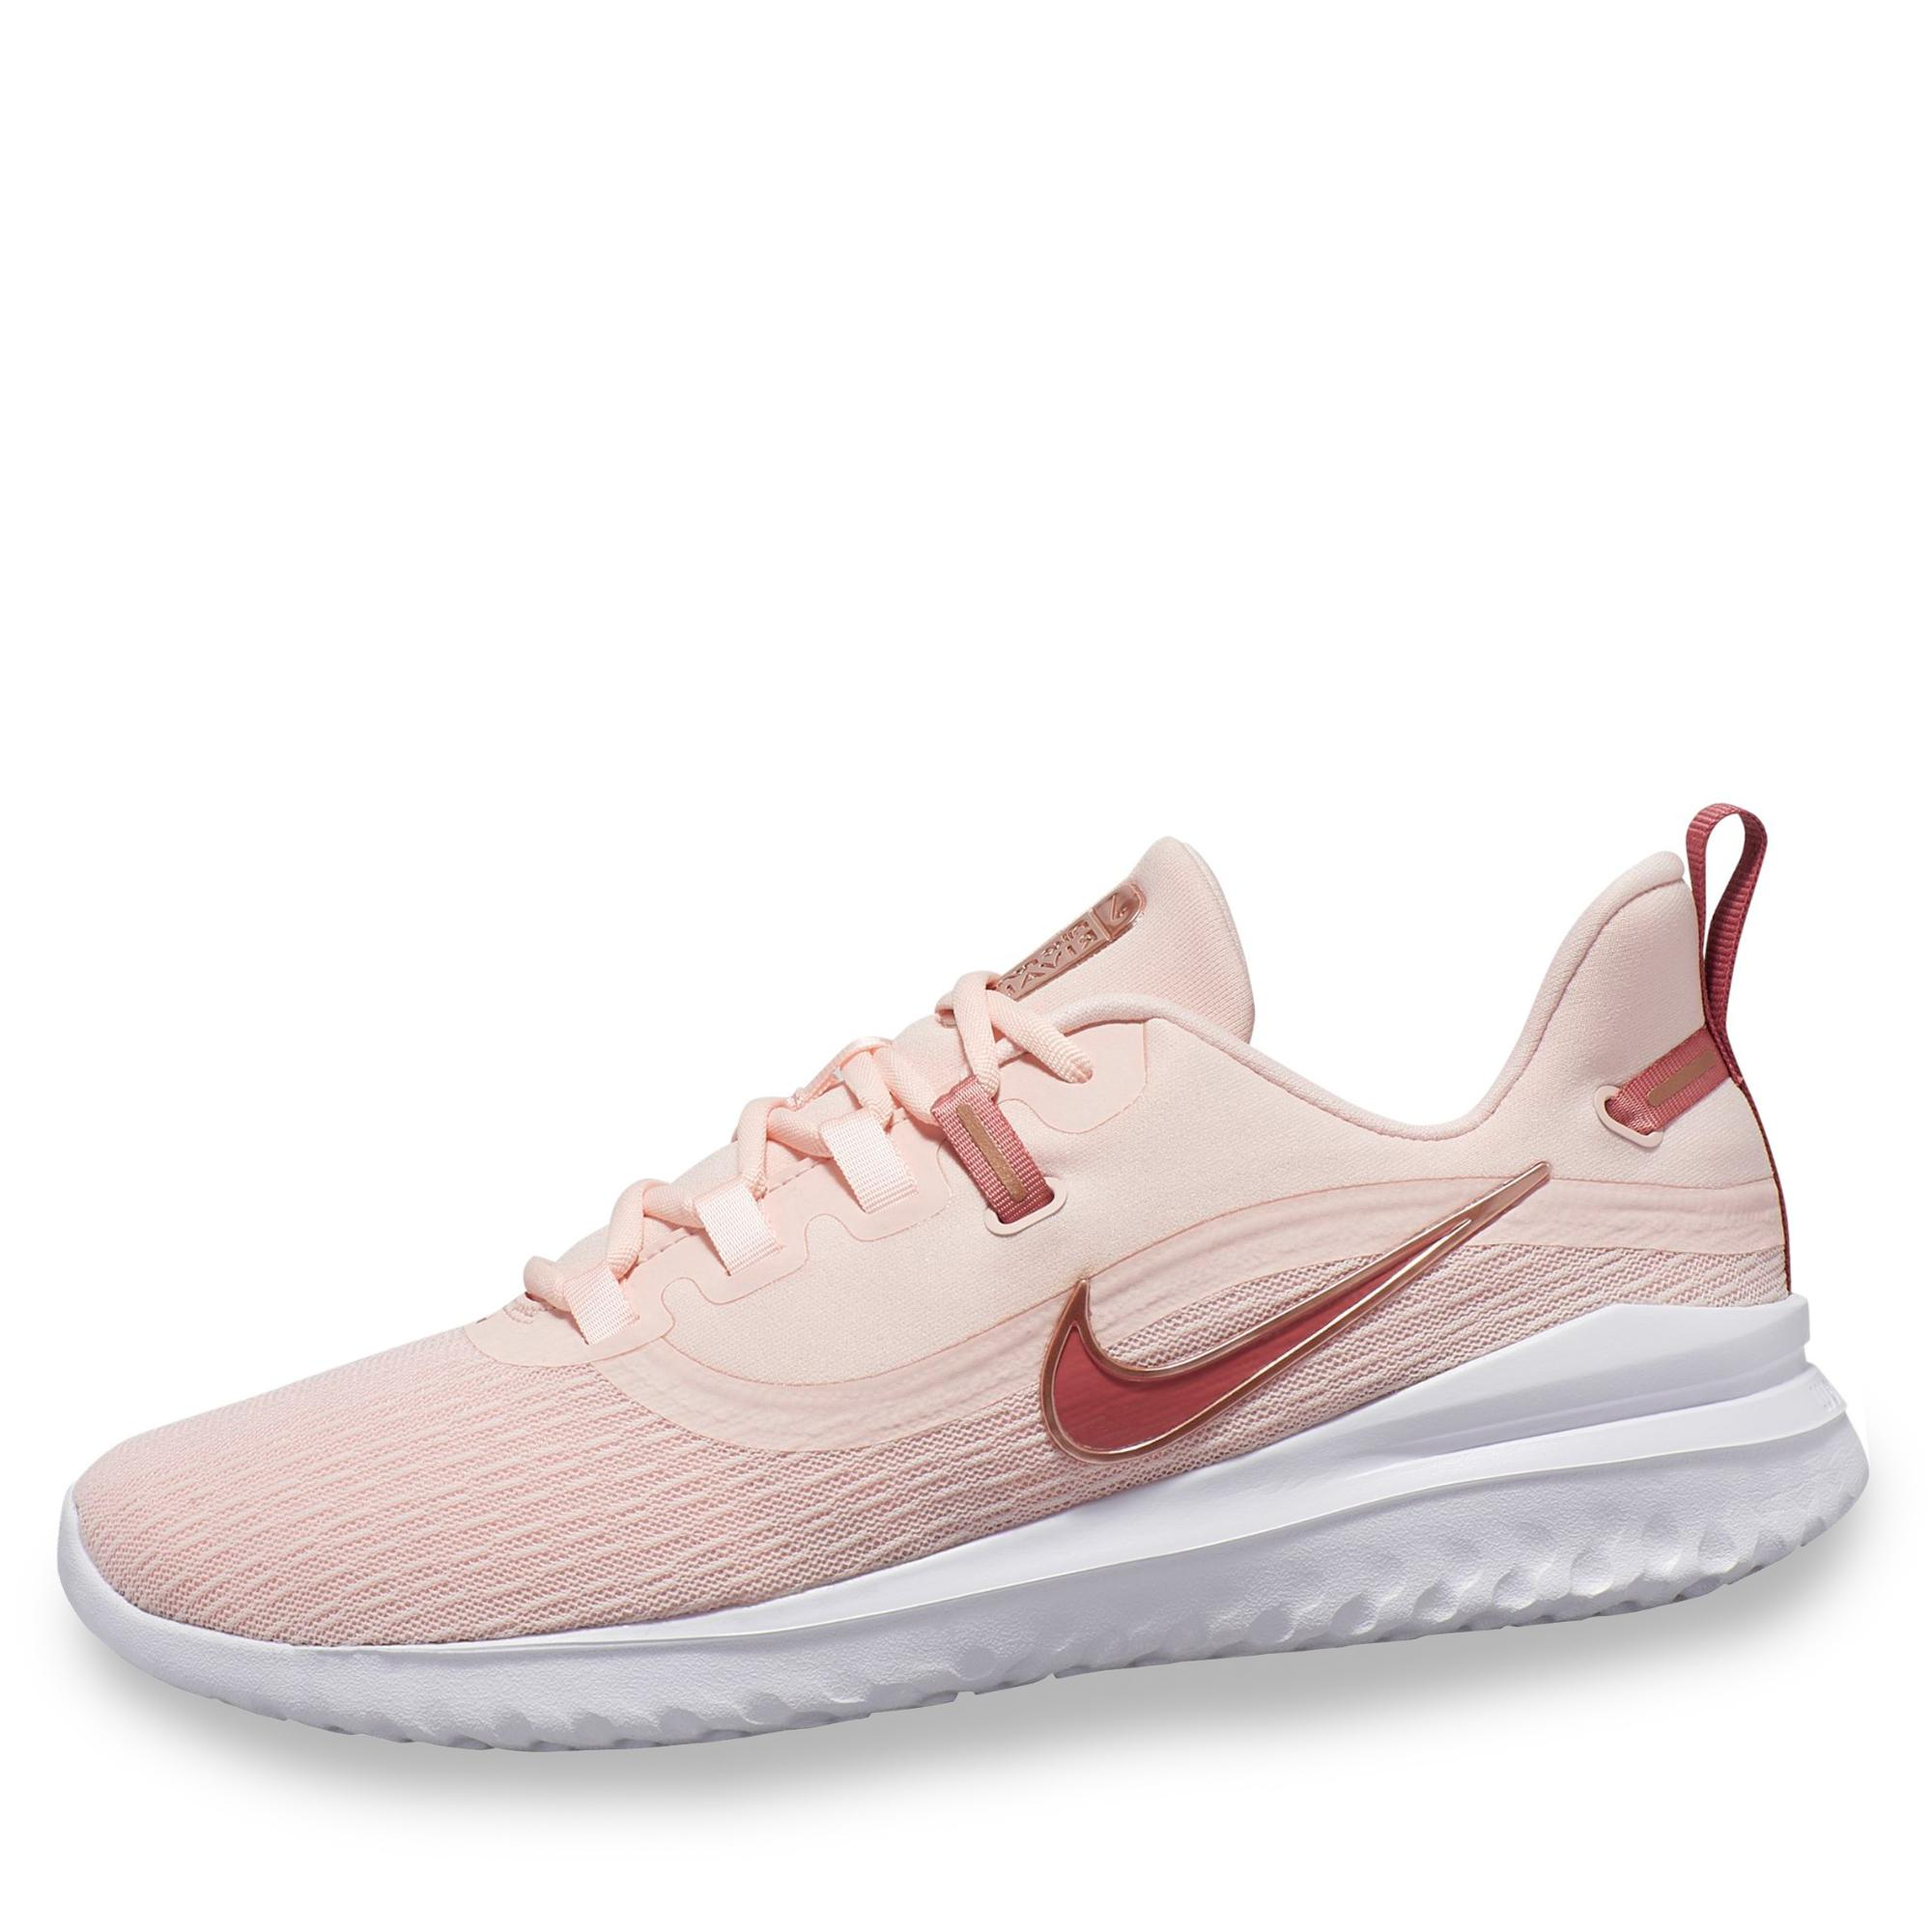 exquisite style 100% top quality buying now Nike Renew Rival Sneaker